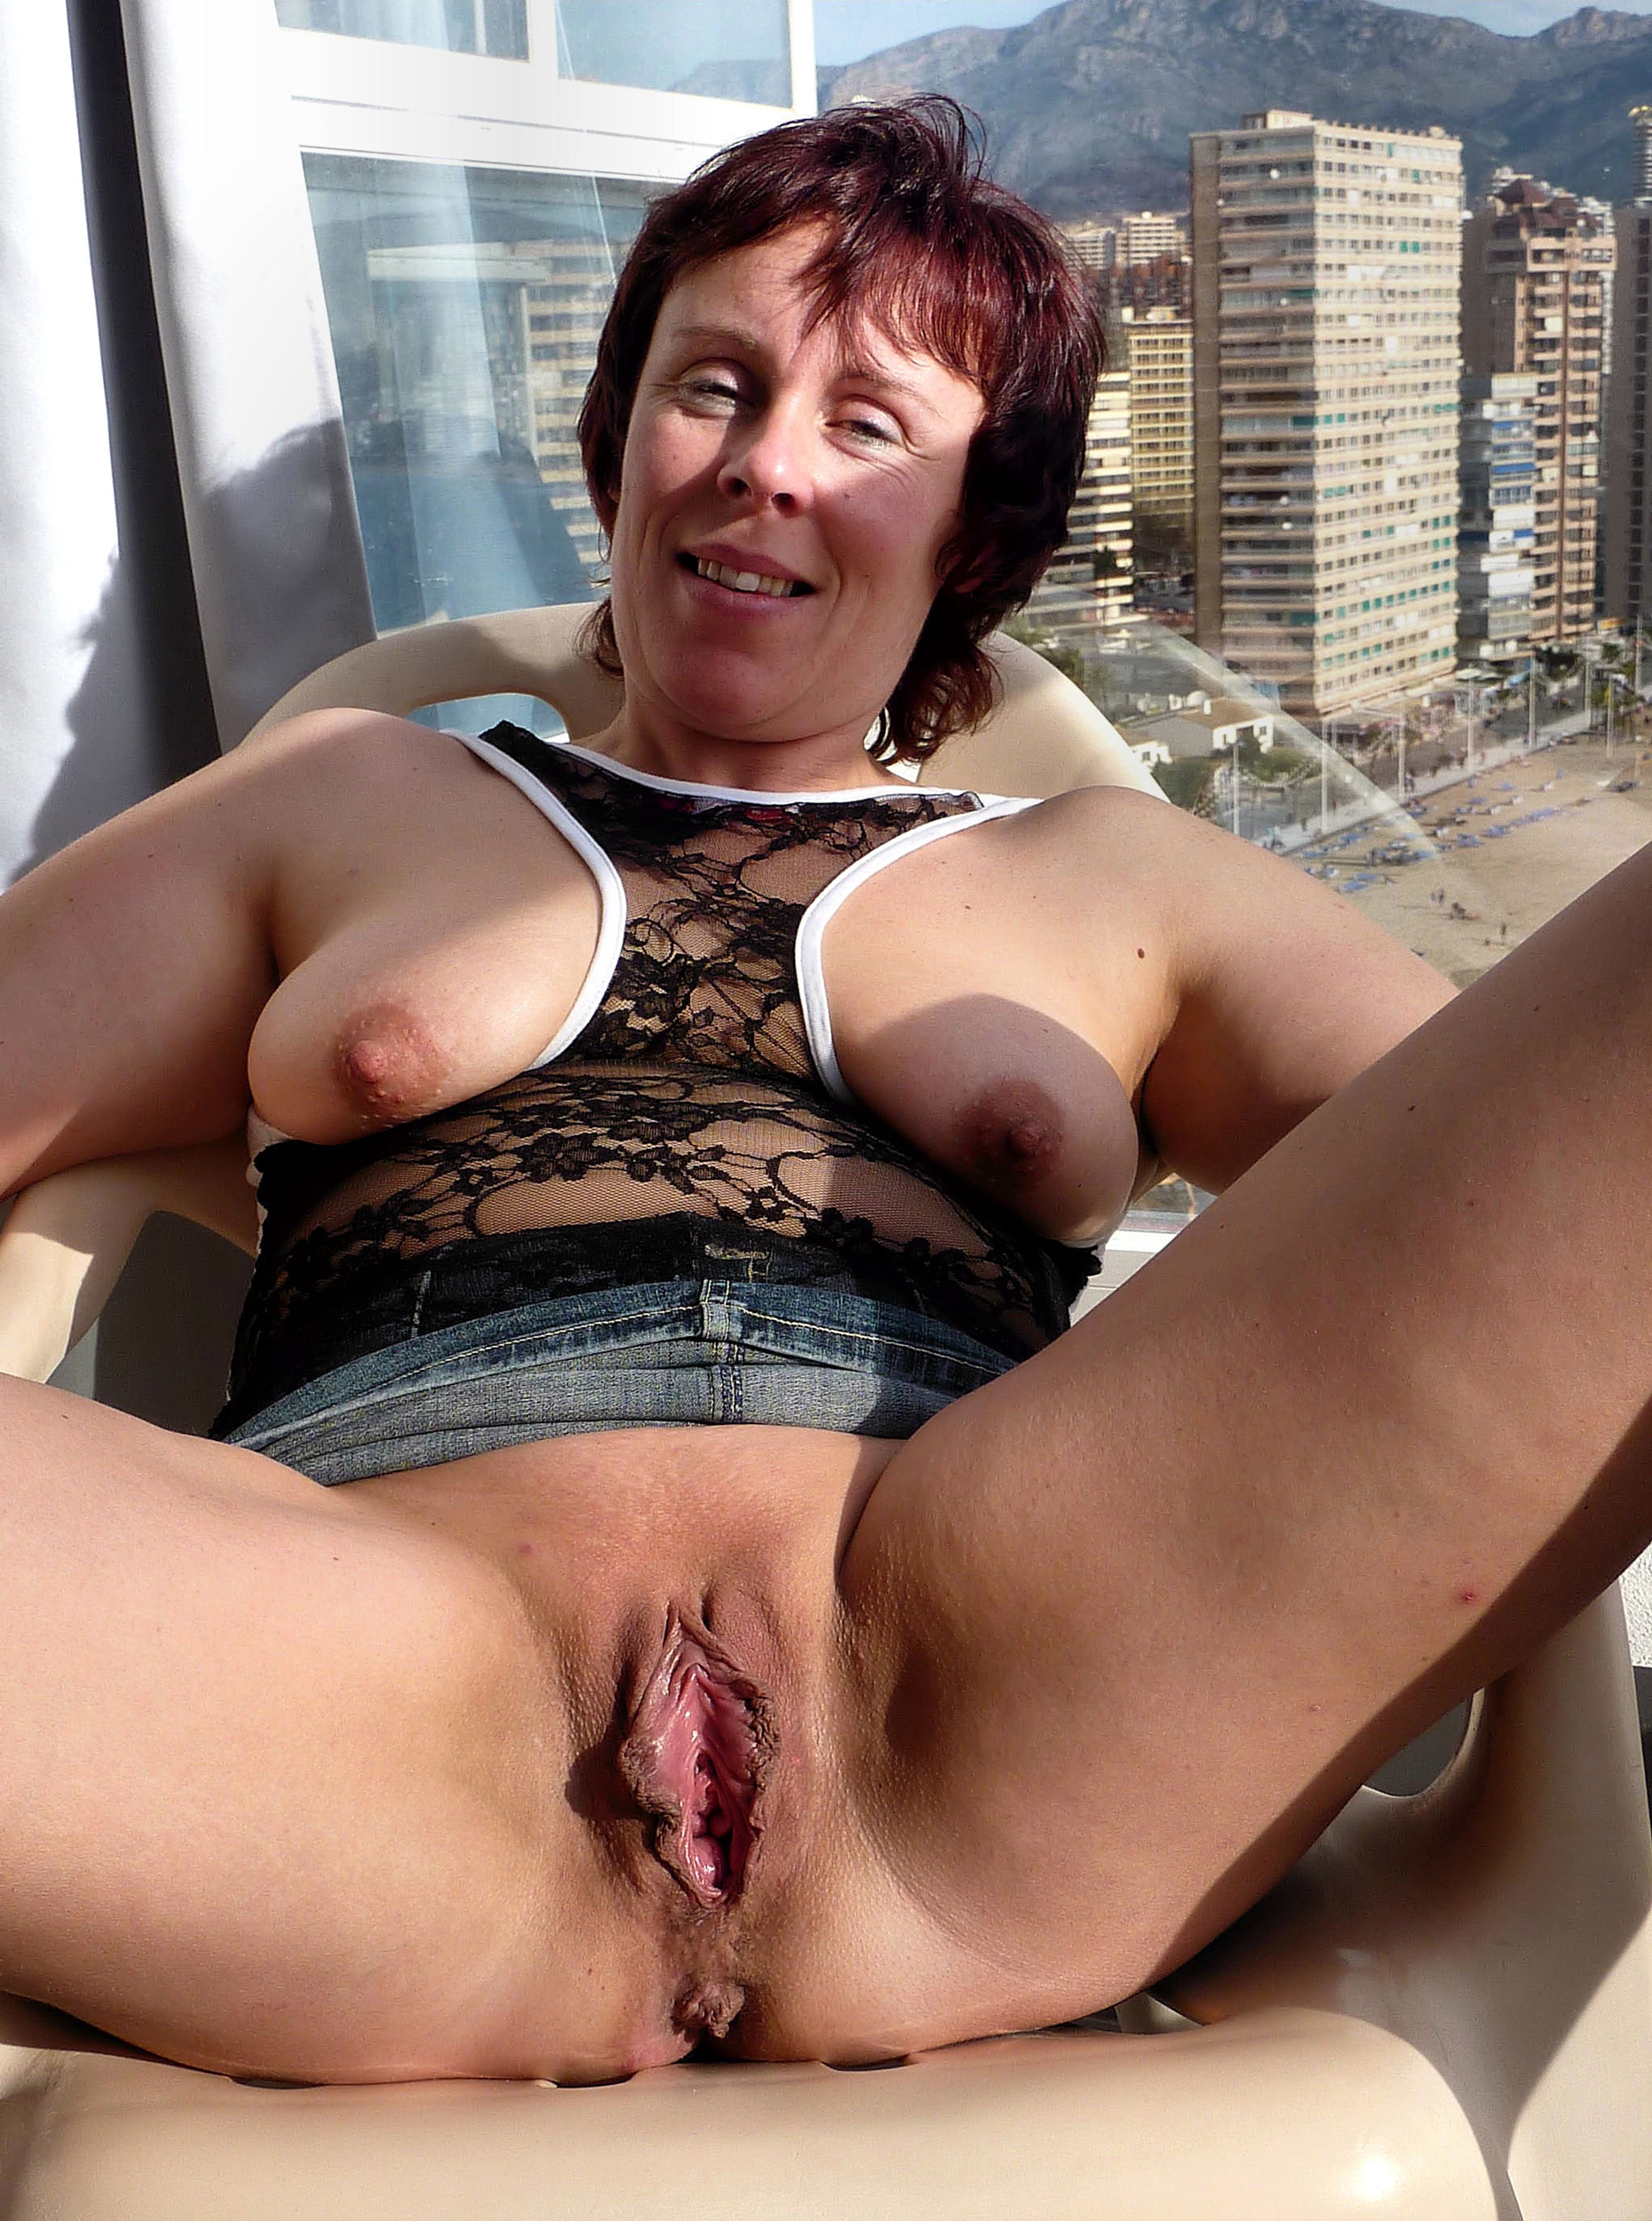 thanks for italian bbw swingers confirm. All